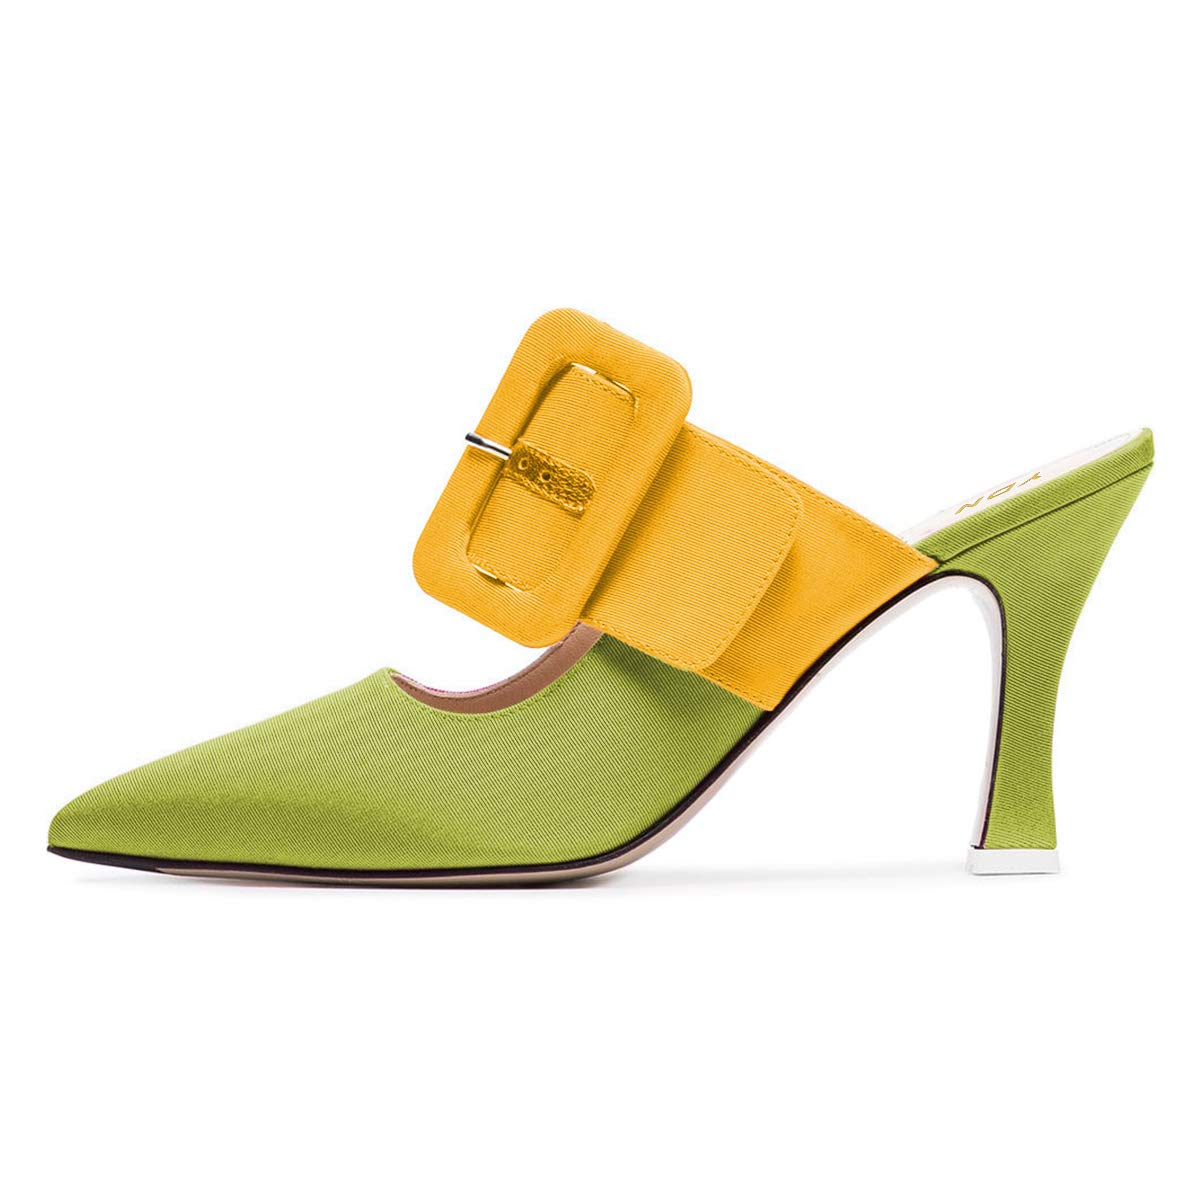 YDN Women Pointed Toe High Heel Mules Slip on Sandals Slide Shoes with Buckle